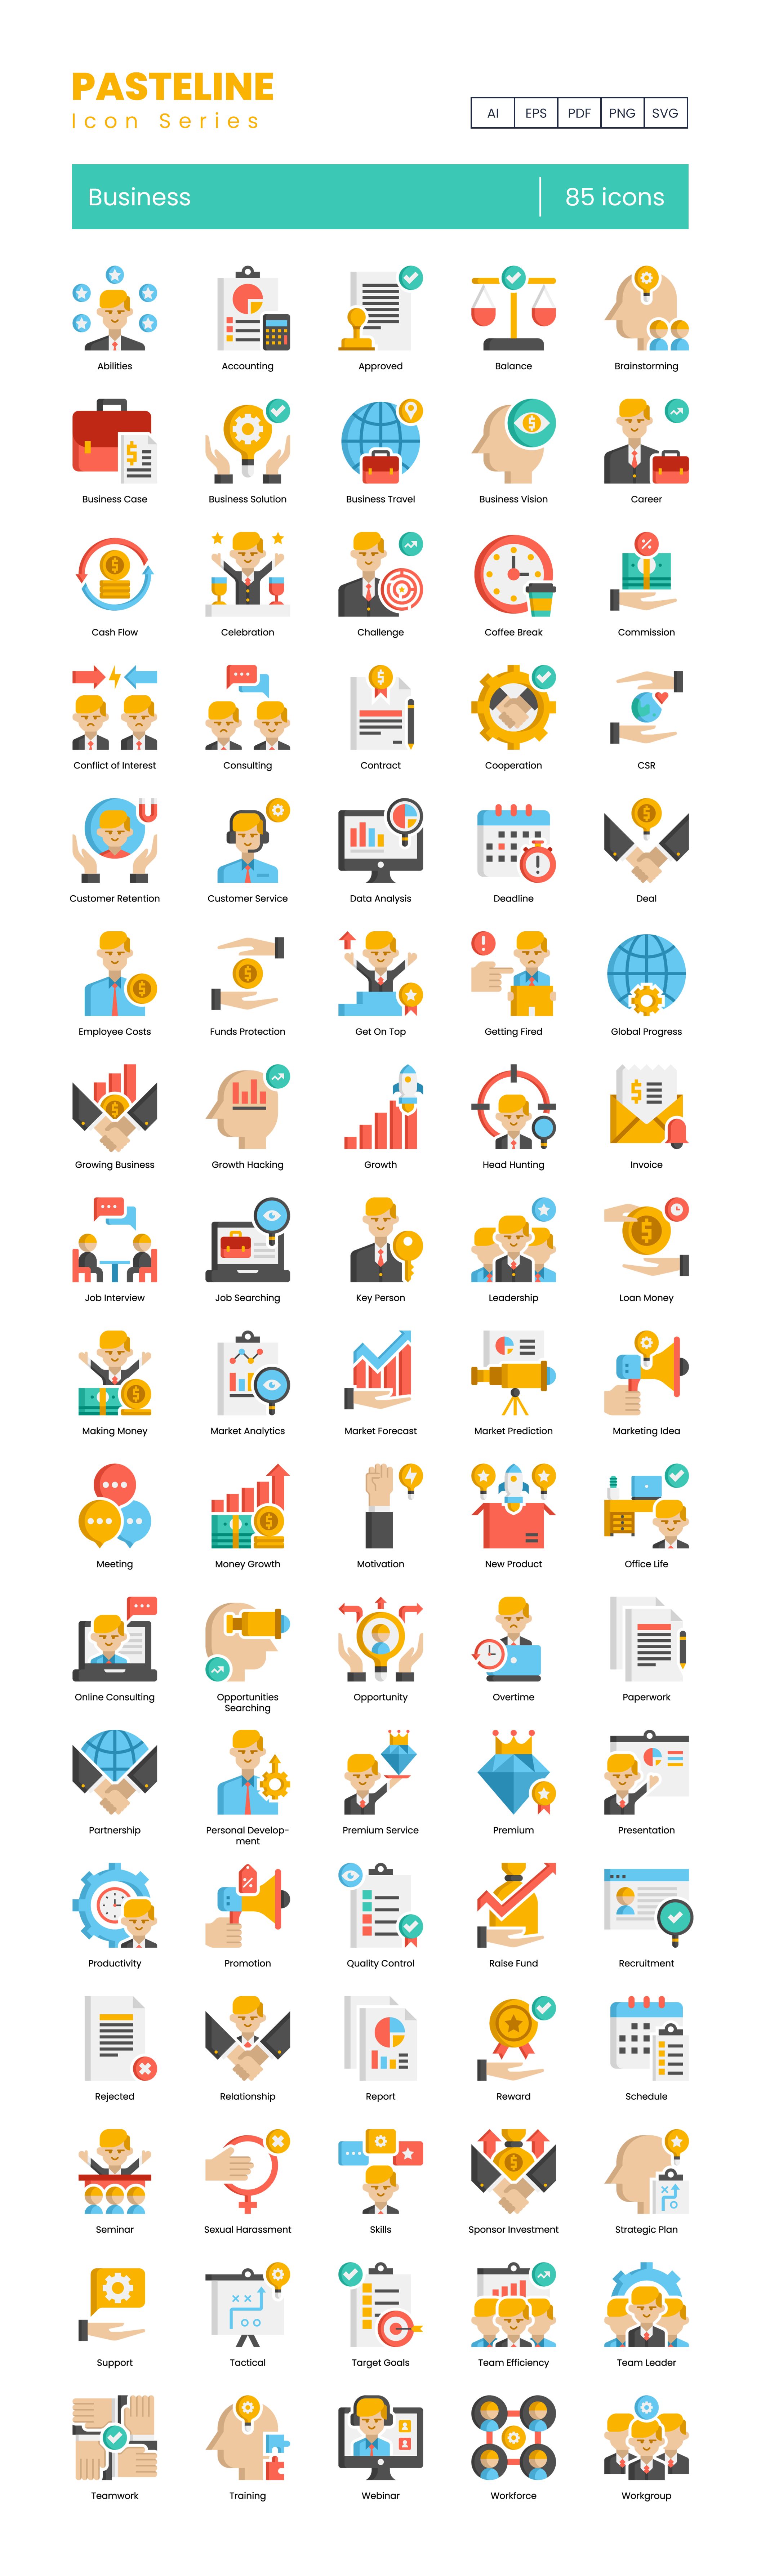 Business Vector Icons Preview Image